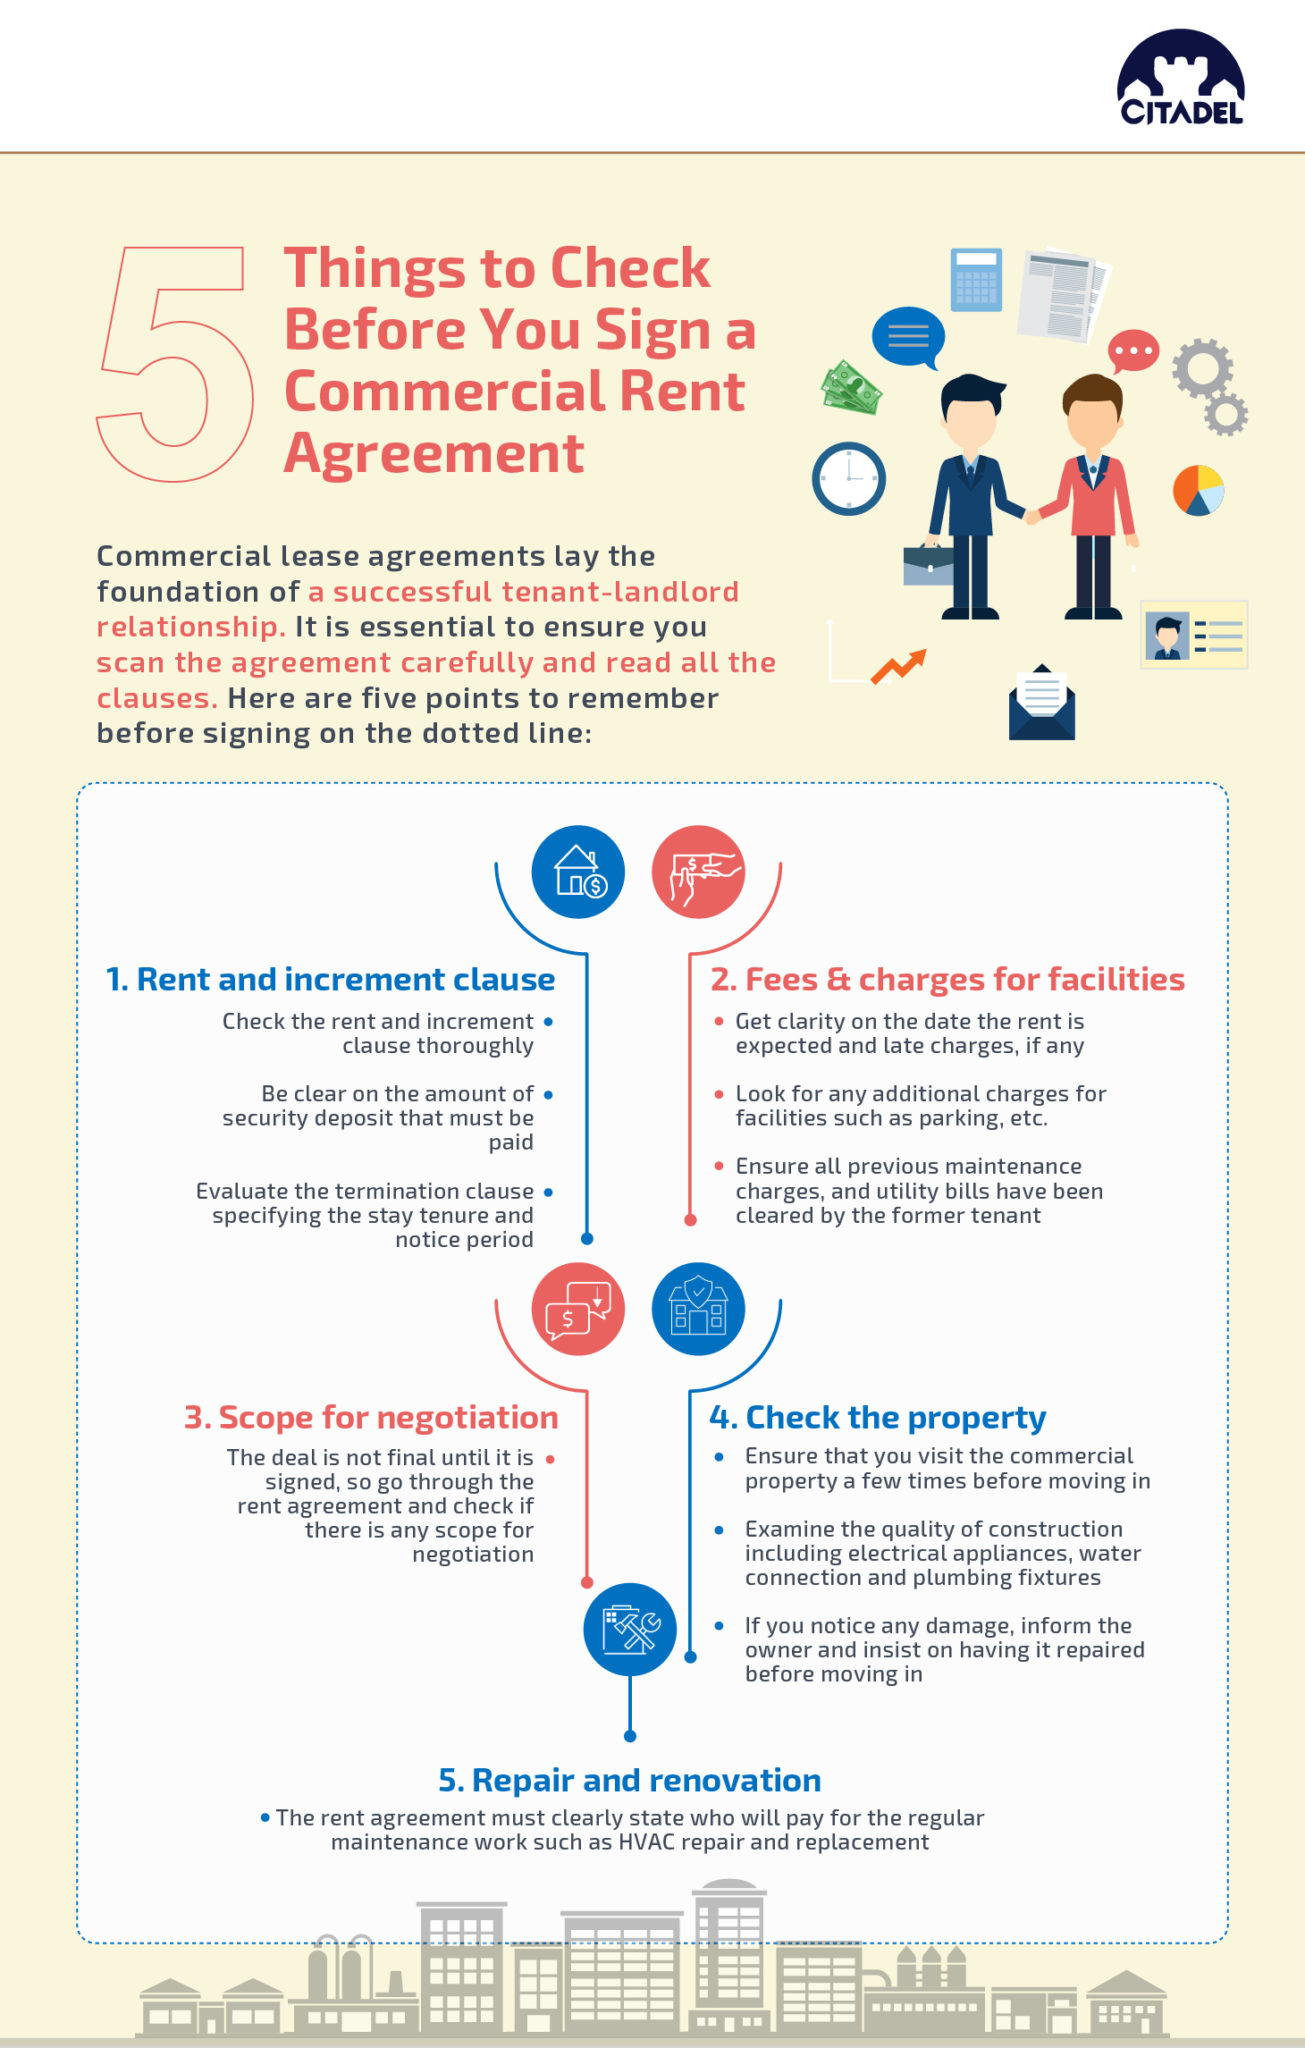 5 Things to Check Before You Sign a Commercial Rent Agreement